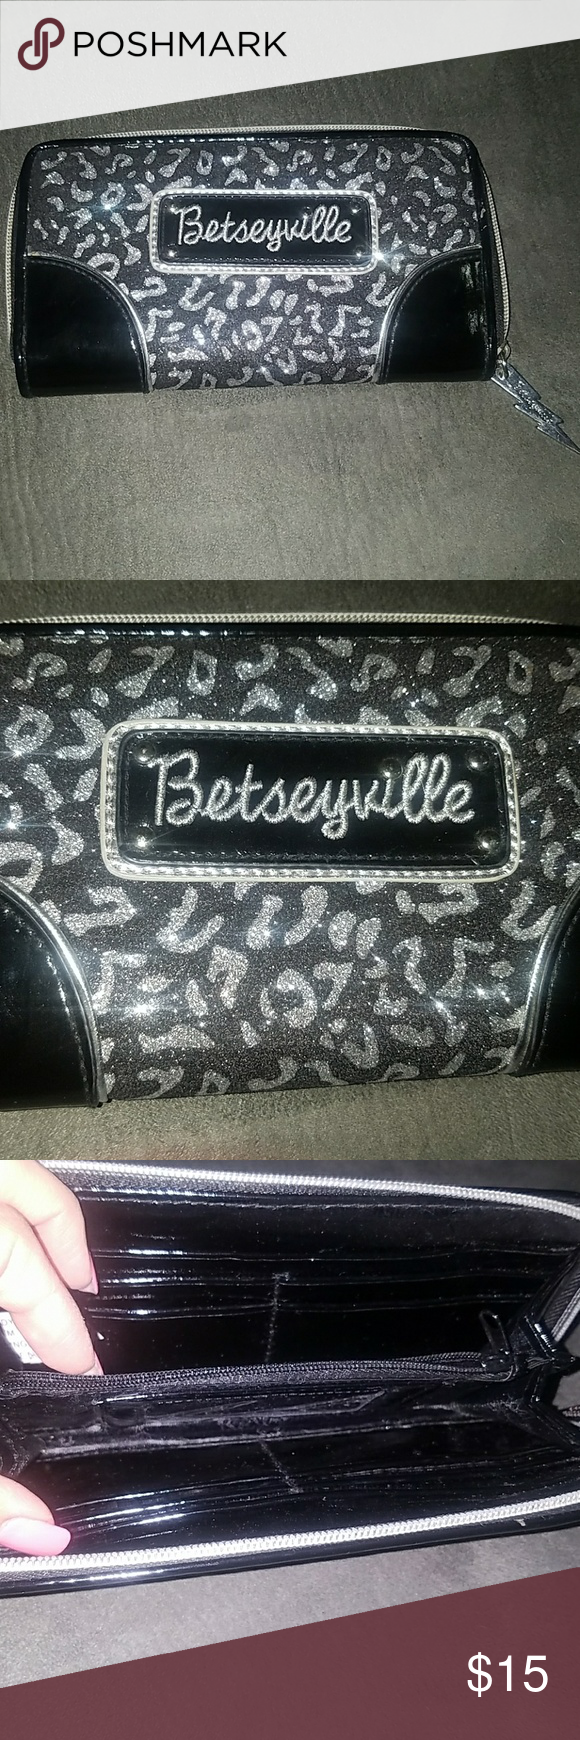 Betsey Johnson wallet Beautiful sparkly black and silver Betsy Johnson wallet. Great condition! Betsey Johnson Bags Wallets